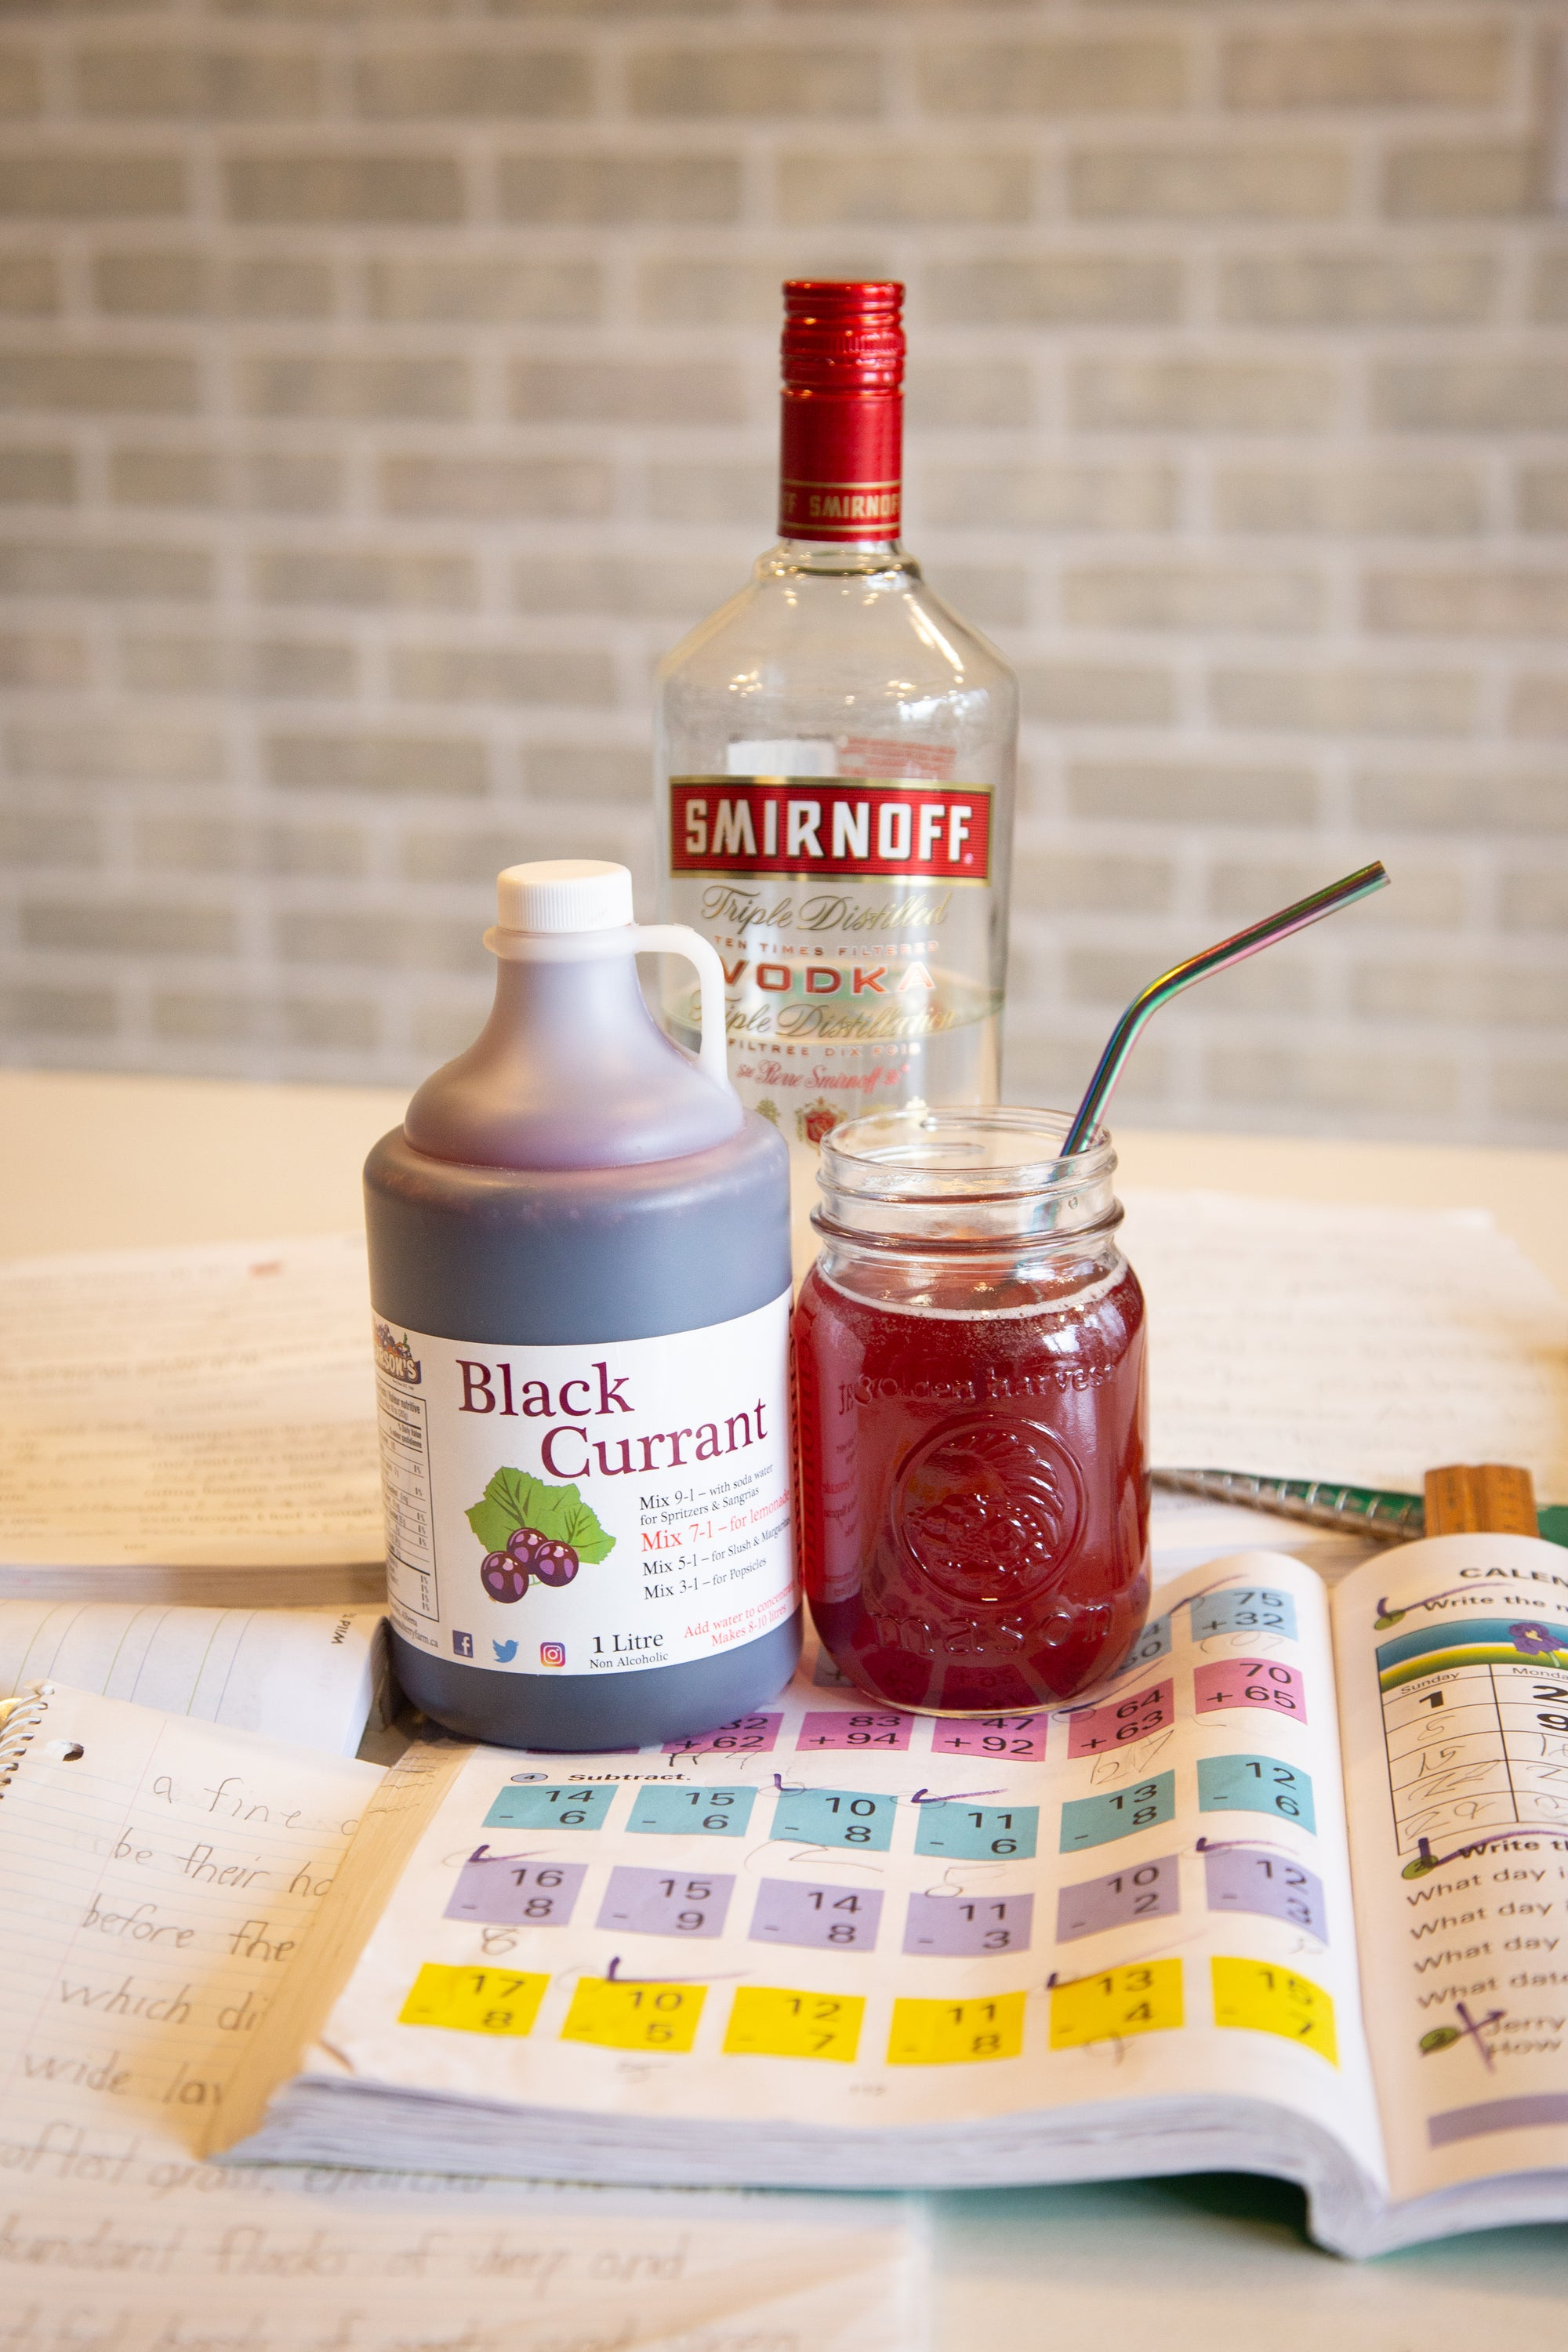 Recipe: Black Currant Liquour